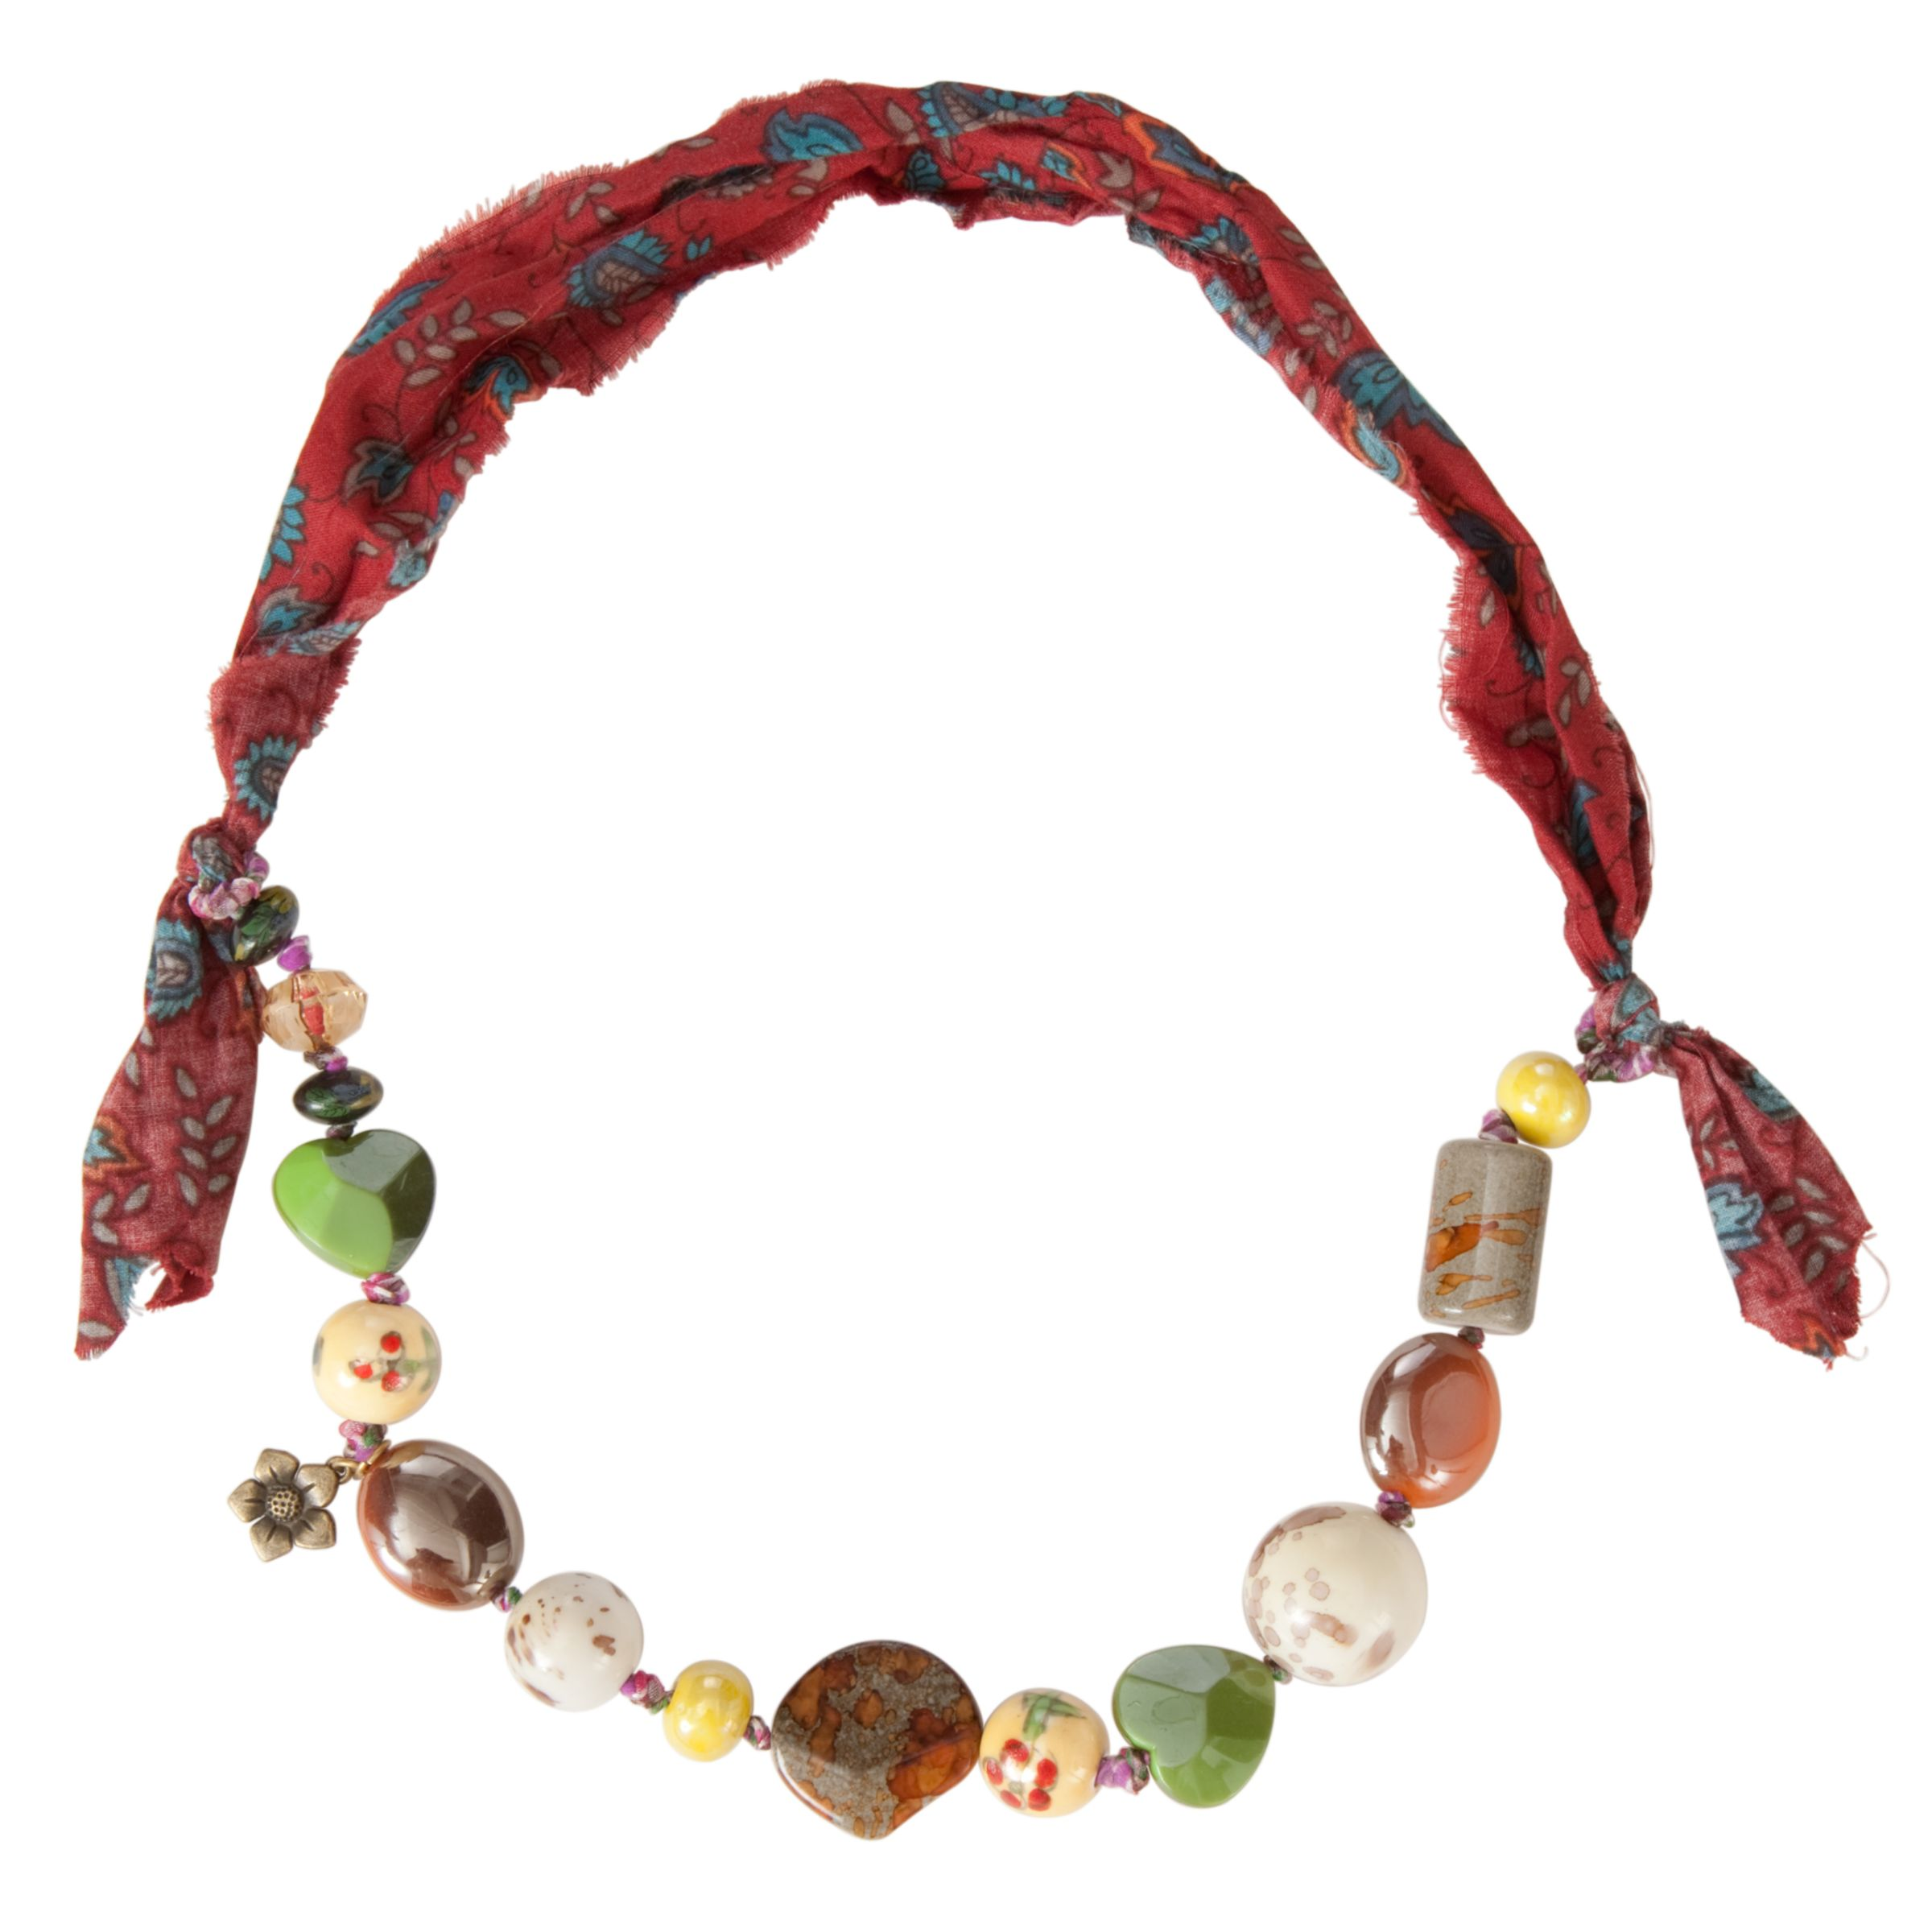 One Button Assorted Ceramic Splatter Beads Necklace, Coffee